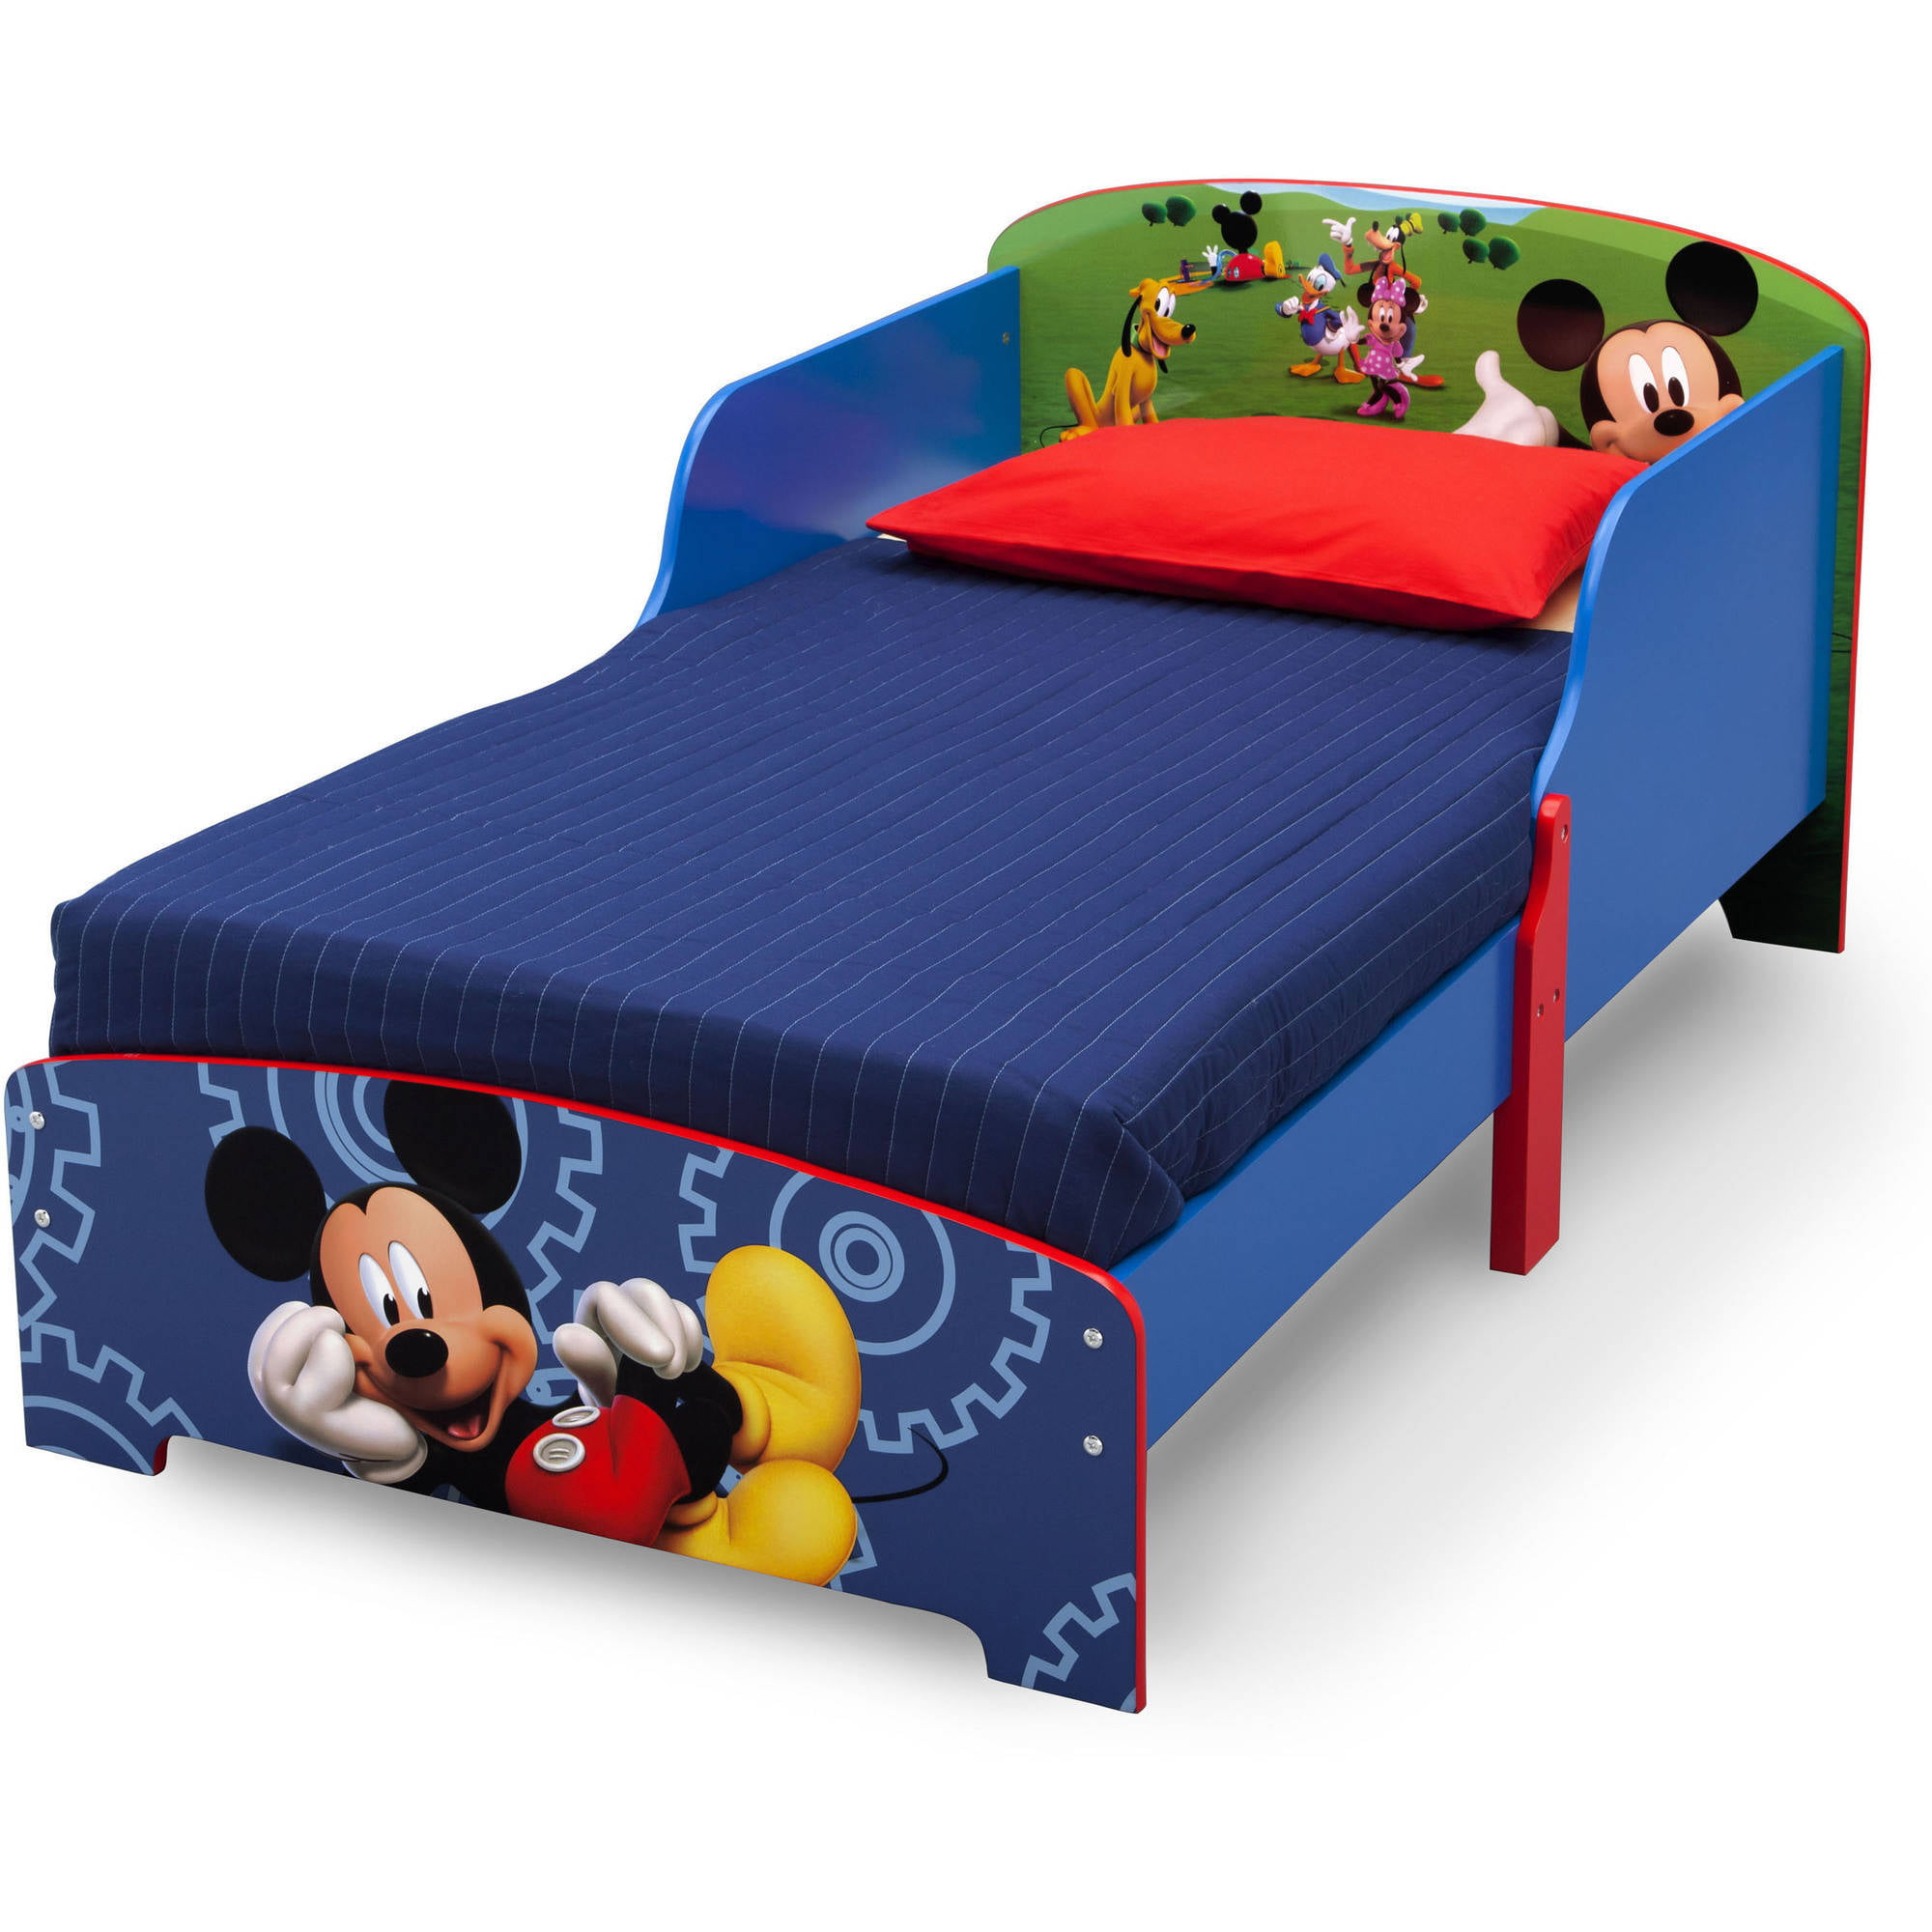 Disney Mickey Mouse Wood Toddler Bed By Delta Children   Walmart.com